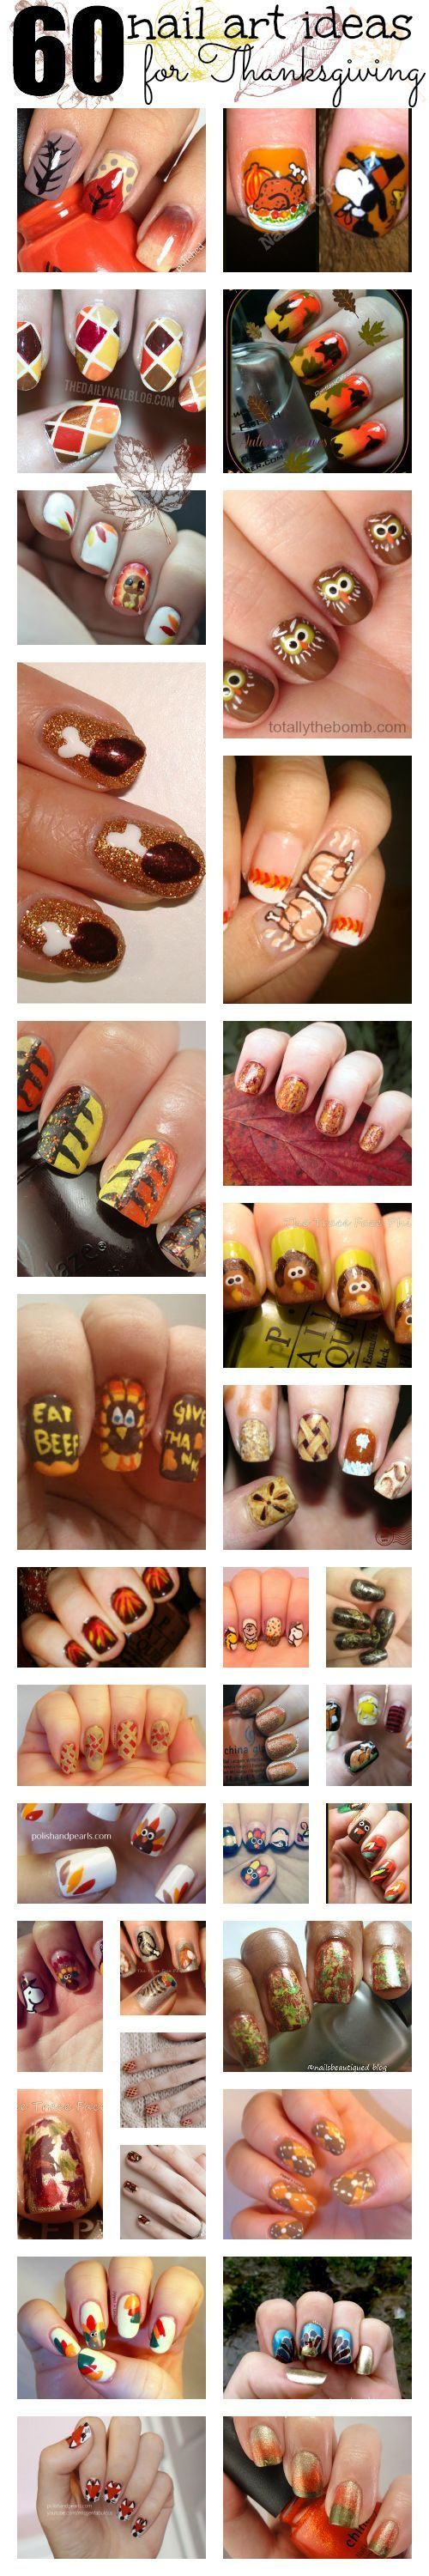 Pink glittery emoji nail art 183 how to paint a glitter - Turkeys Leaves Fall Scenes Thanksgiving Dinner Thanksgiving Feast Snoopy Thanksgiving They Re All There I Can T Wait To Try The Turkey Leg Nails